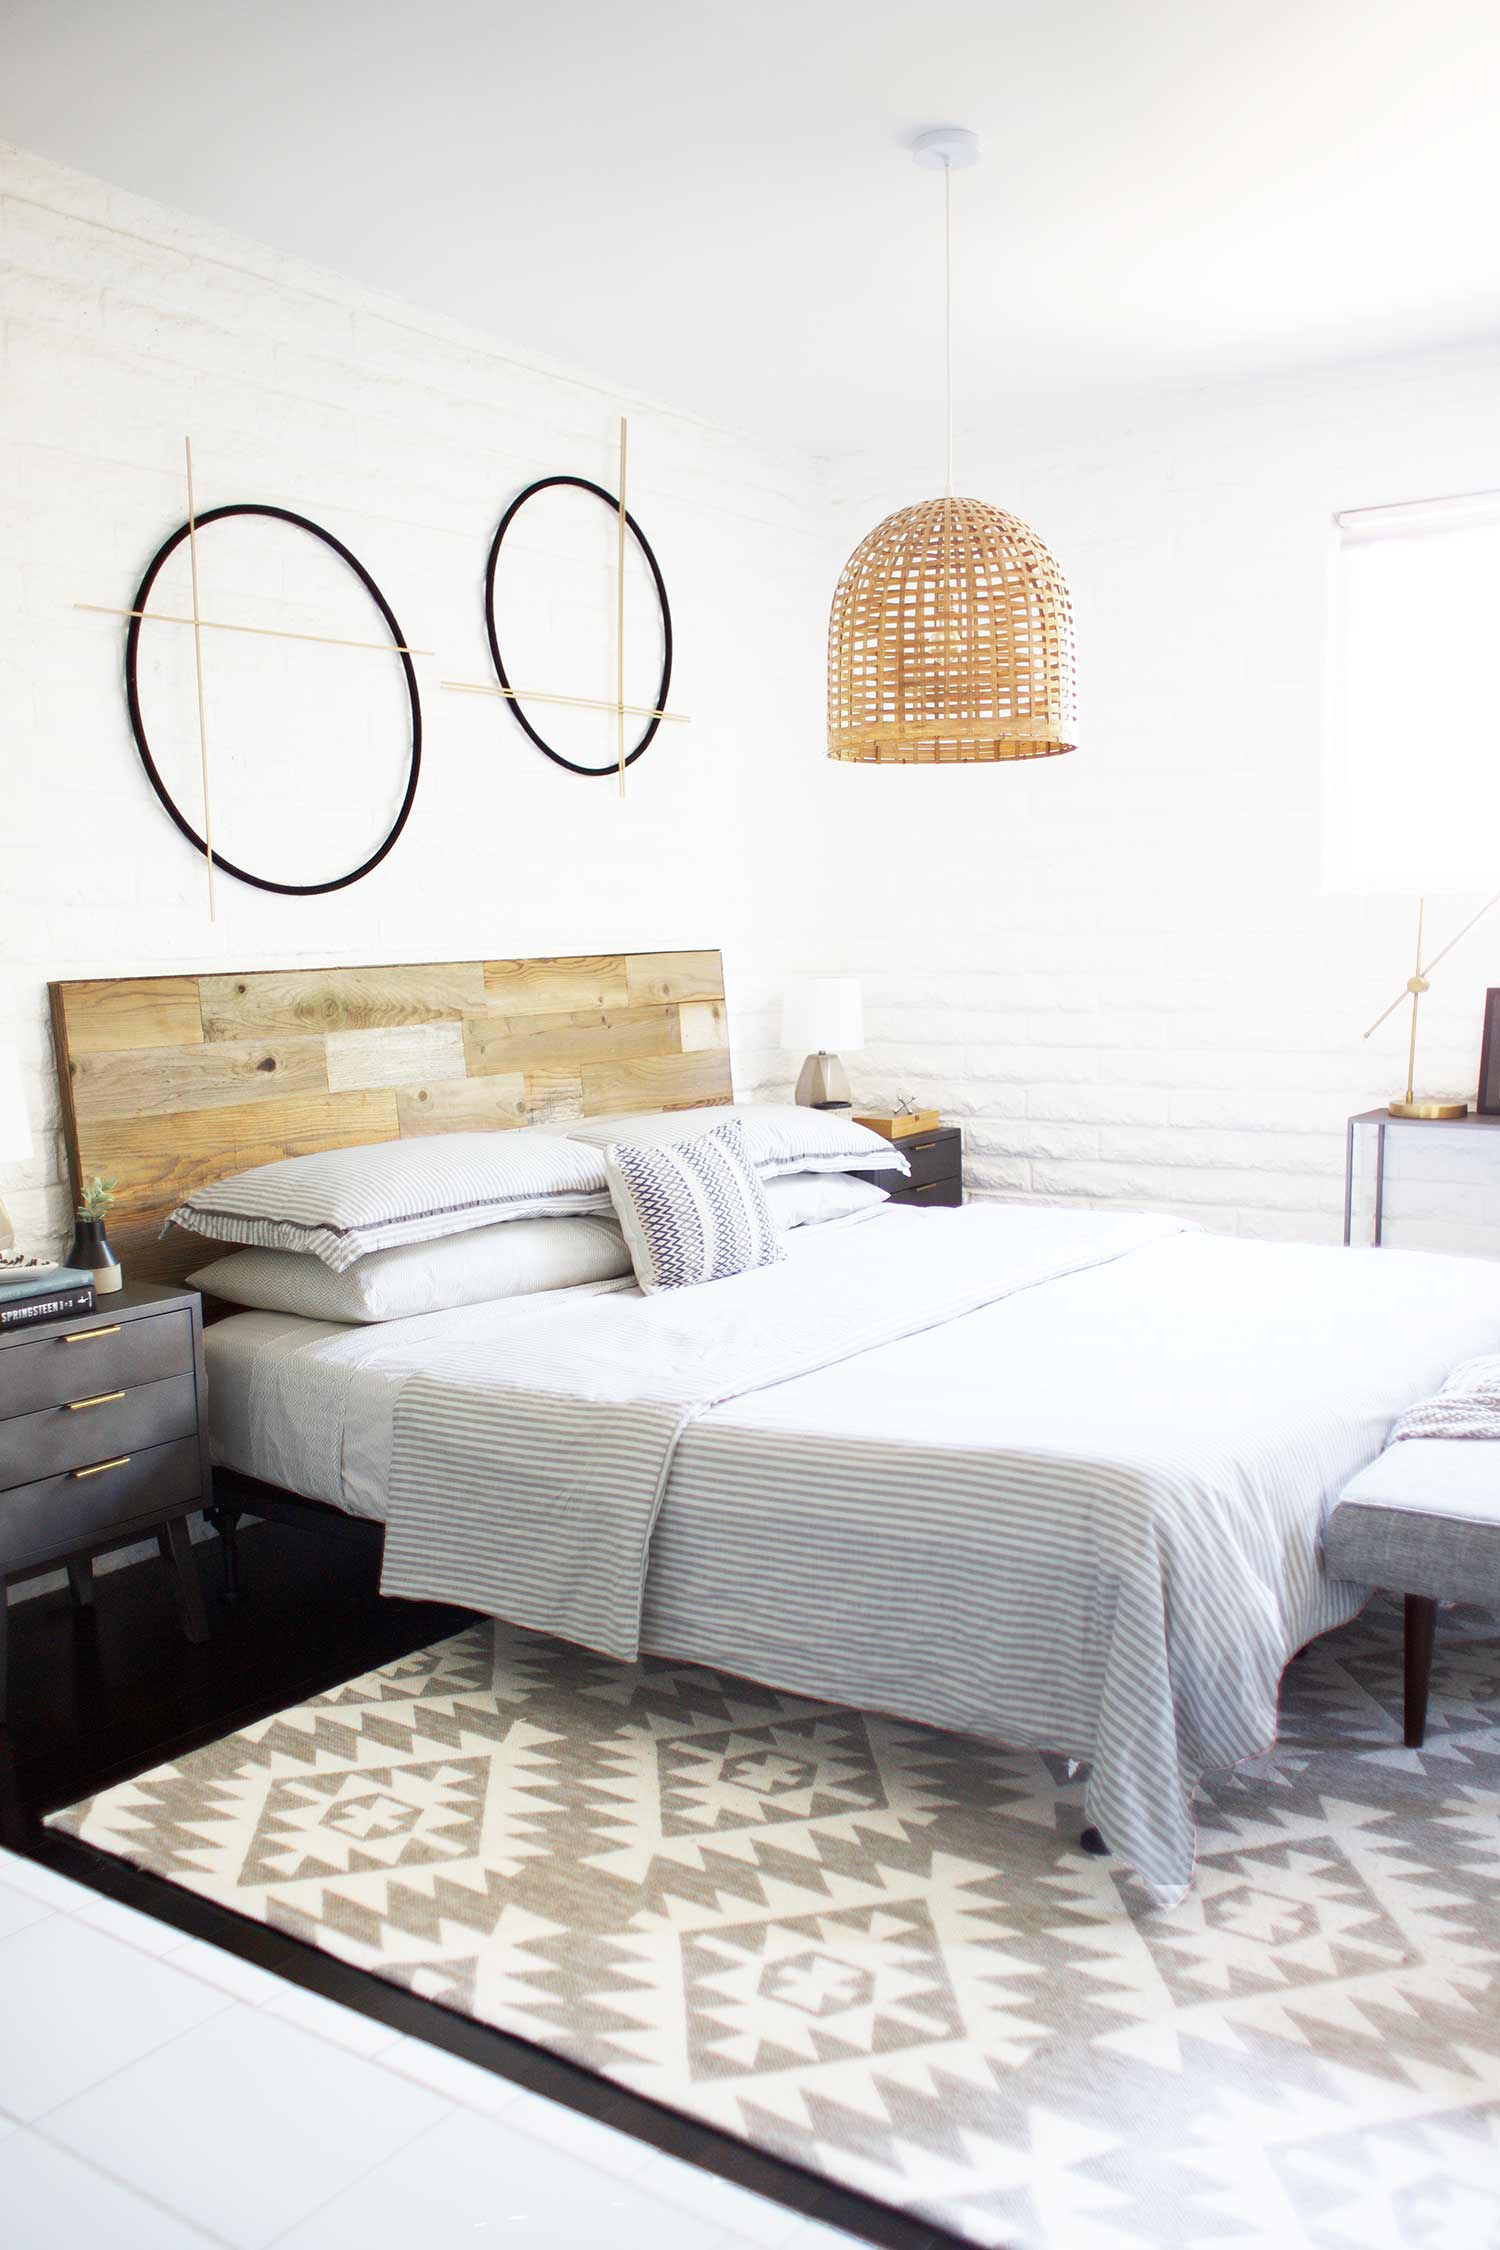 20 Minute DIY Reclaimed Wood Headboard — Kristi Murphy | DIY Blog